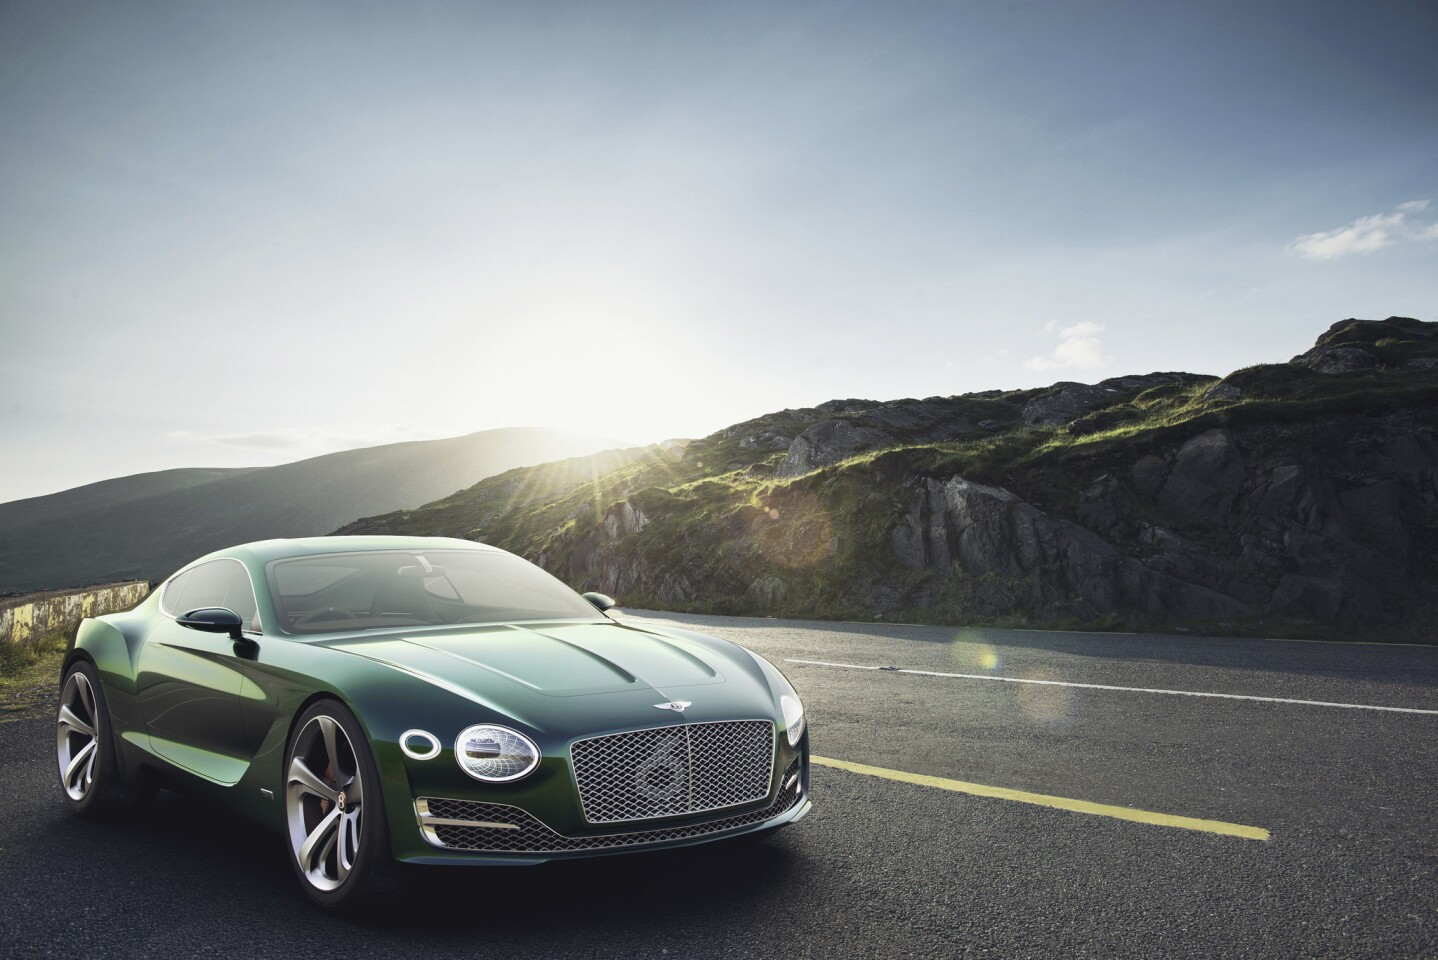 The Bentley EXP 10 Speed 6 concept debuts at the 2015 Geneva Auto Show. It's a look at a sports coupe the luxury automaker will likely produce in the next few years.